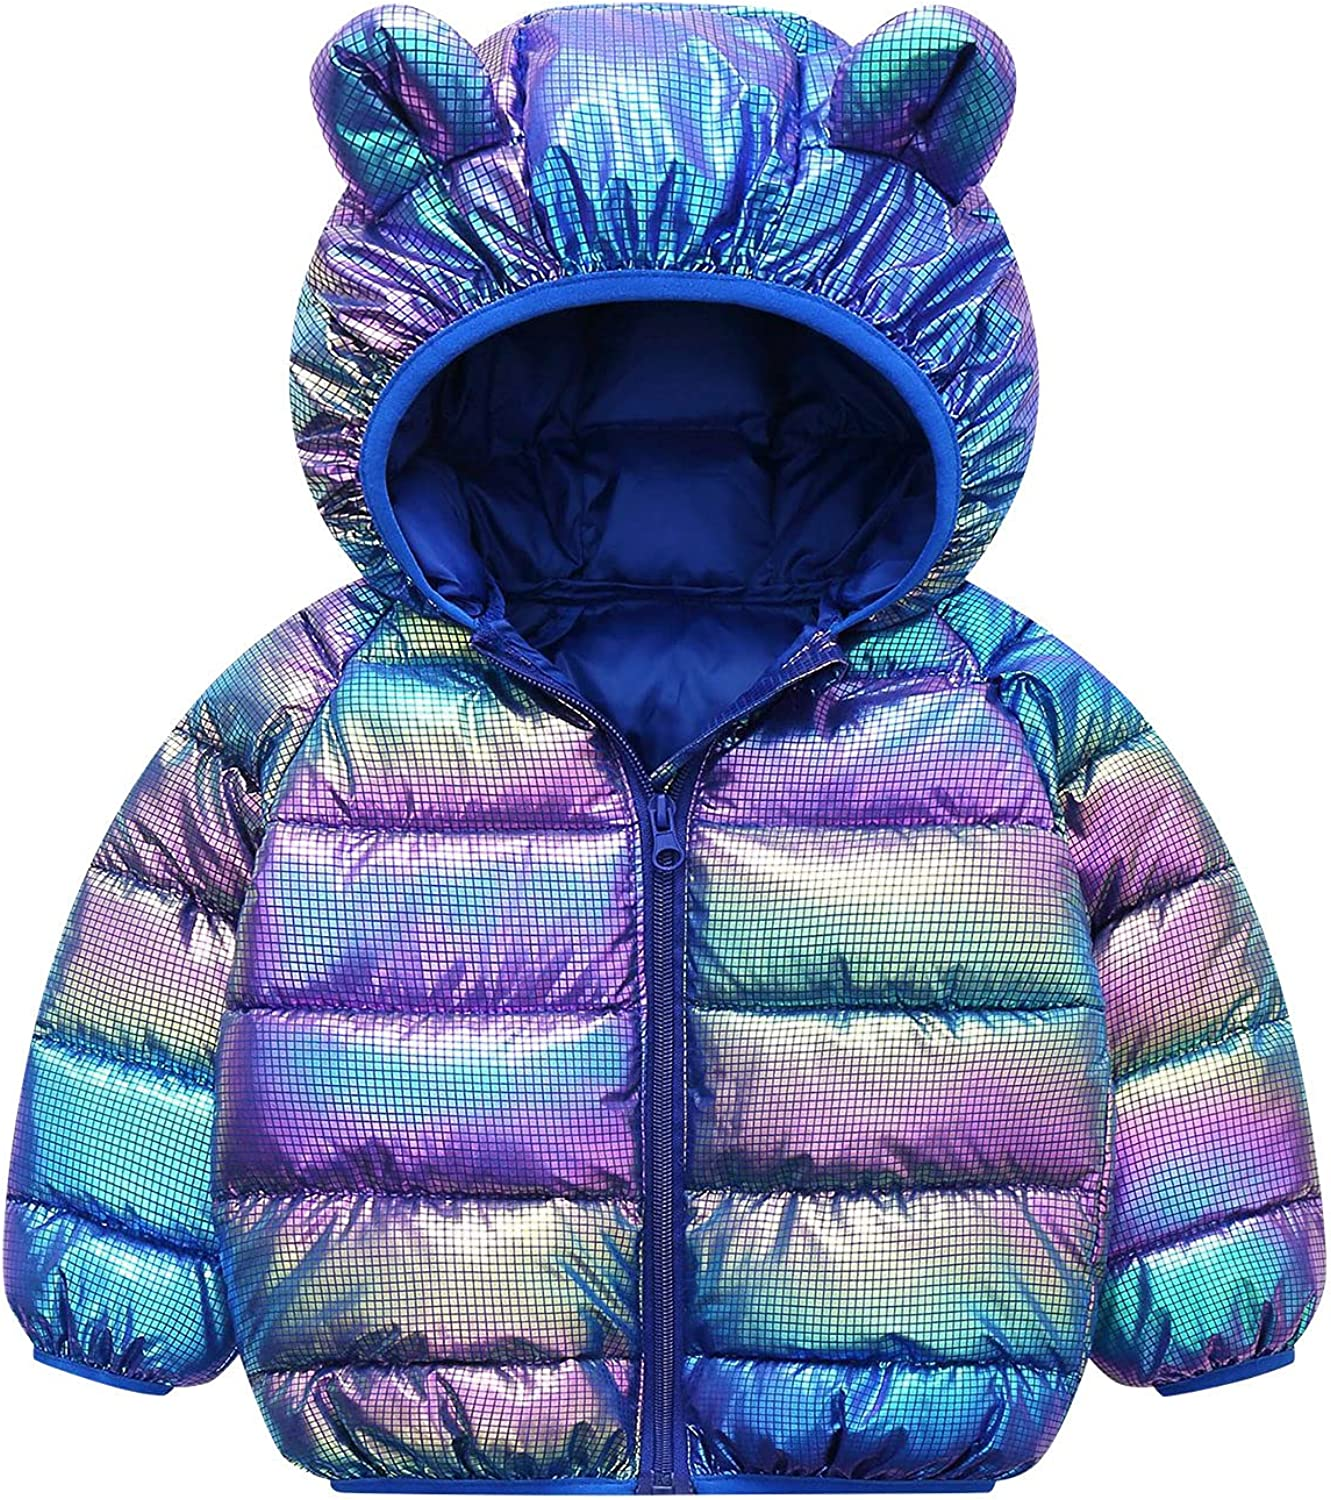 Max Large discharge sale 78% OFF Kids Baby Girls Boys Hooded Warm Jacket Windproof Outdoor Thick